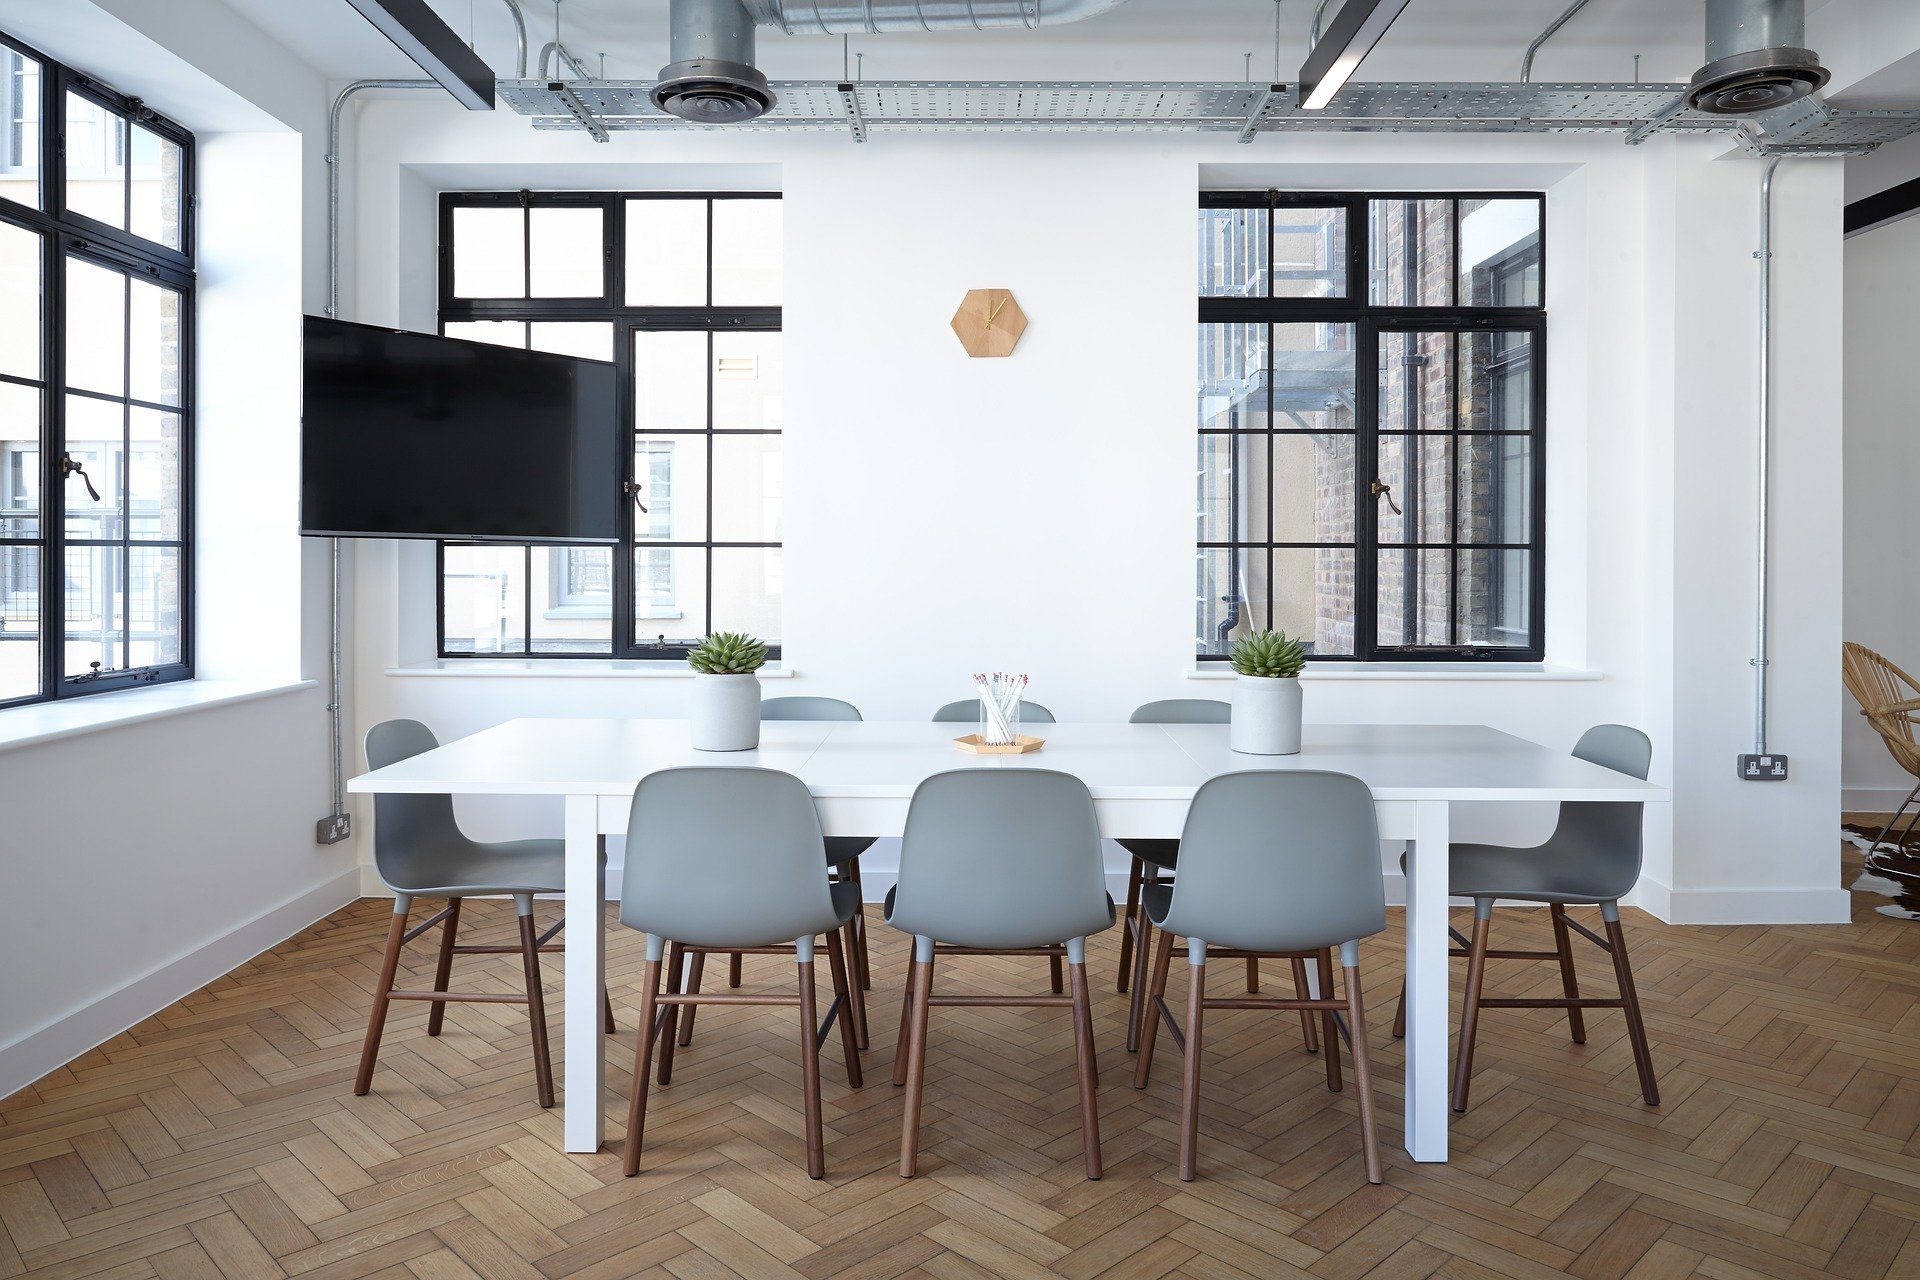 image of offiice with table and chairs. Two windows and a big screen tv to the right of the table